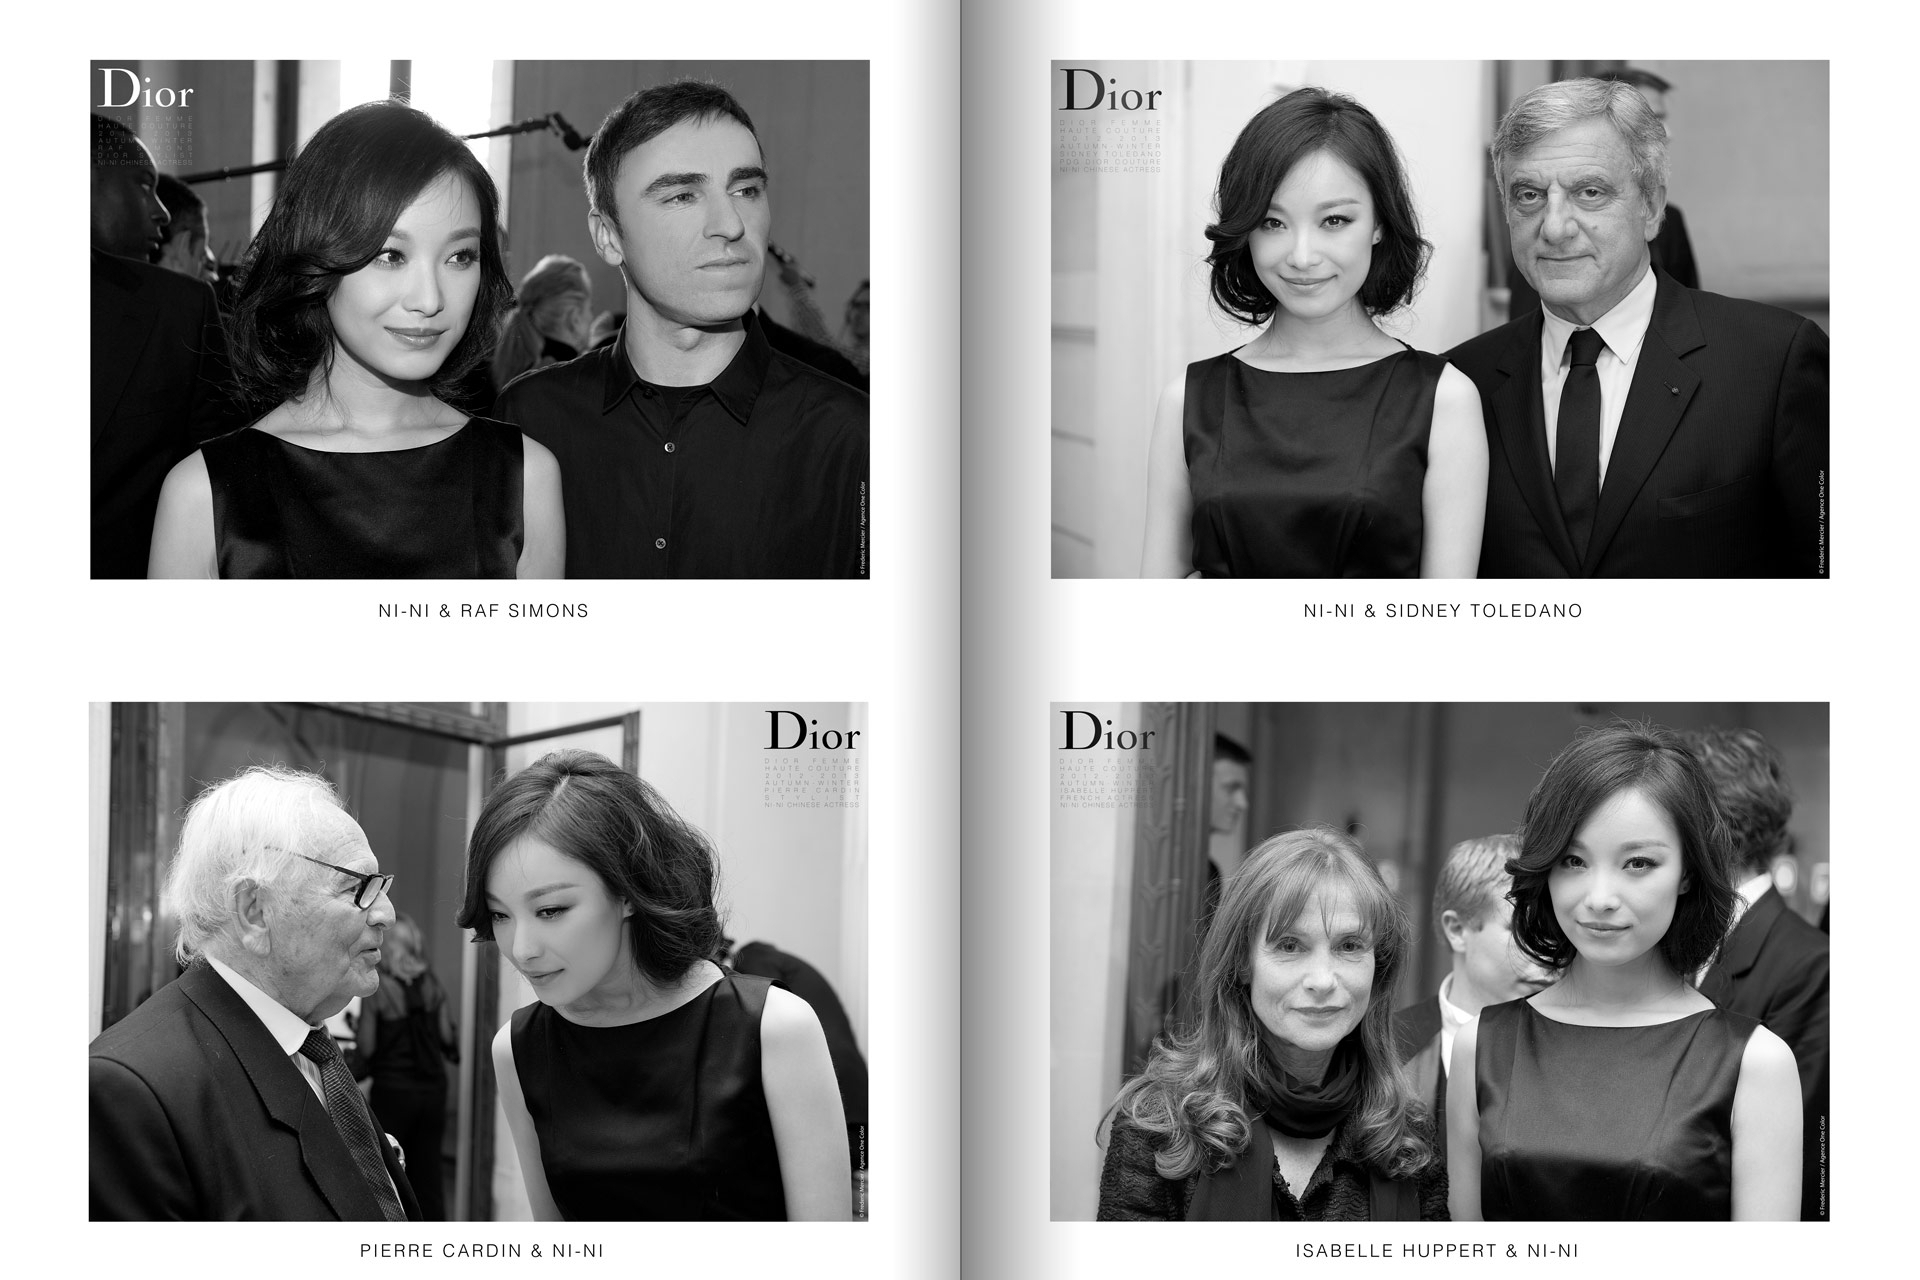 frederic mercier fashion photographer one color portraits people raf simons ni ni sidney toledano pierre cardin and isabelle huppert for dior